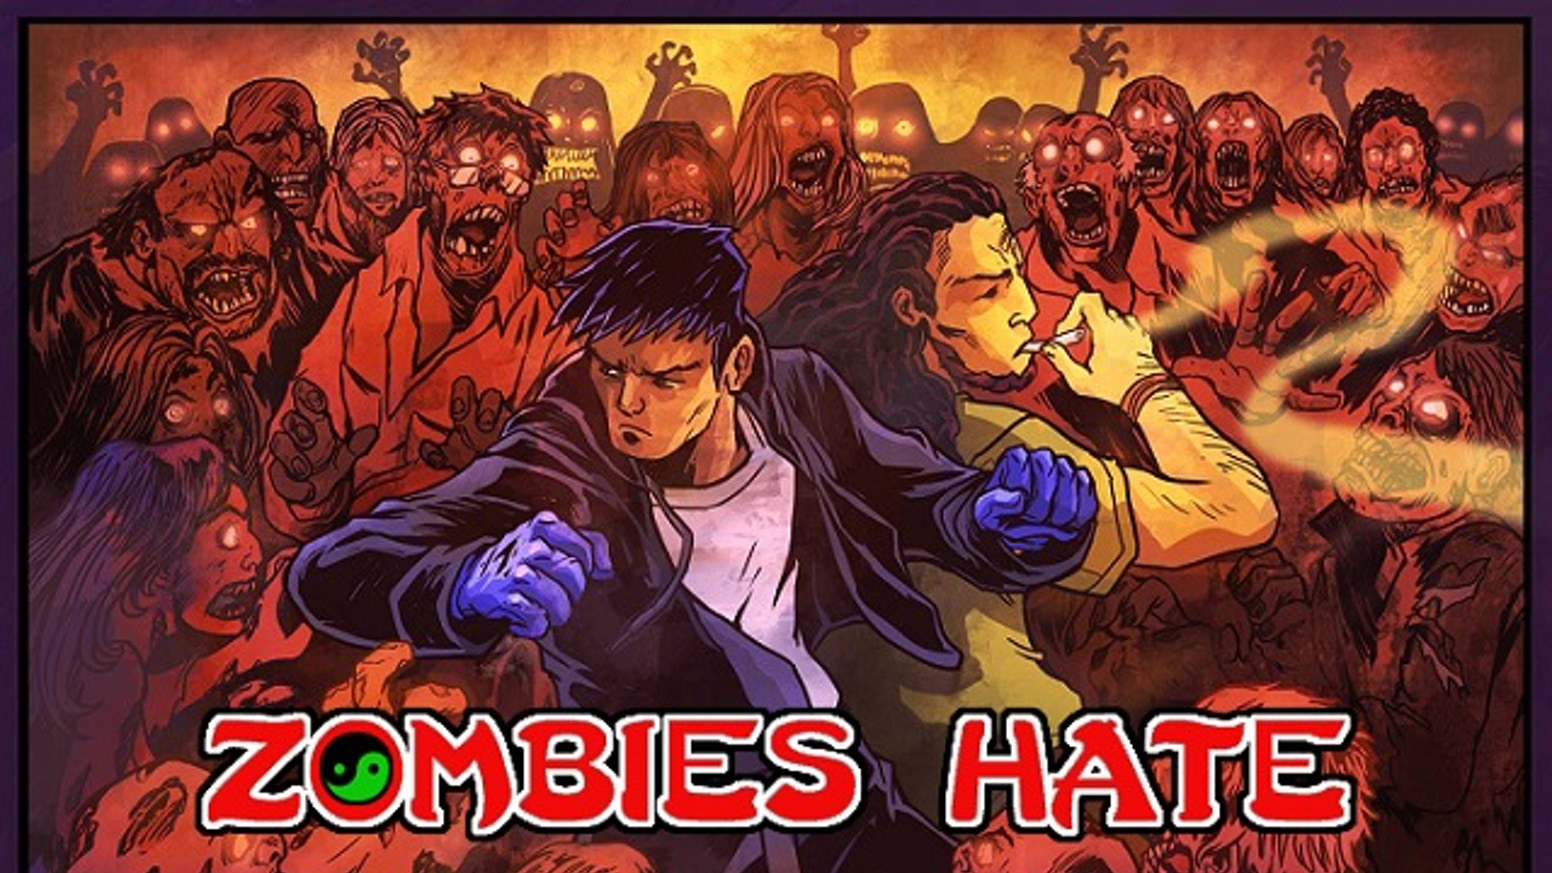 In this comic book, a mismatched pair fight to survive in a post zombie apocalypse world. Like comics? Back a graphic novel with punch!